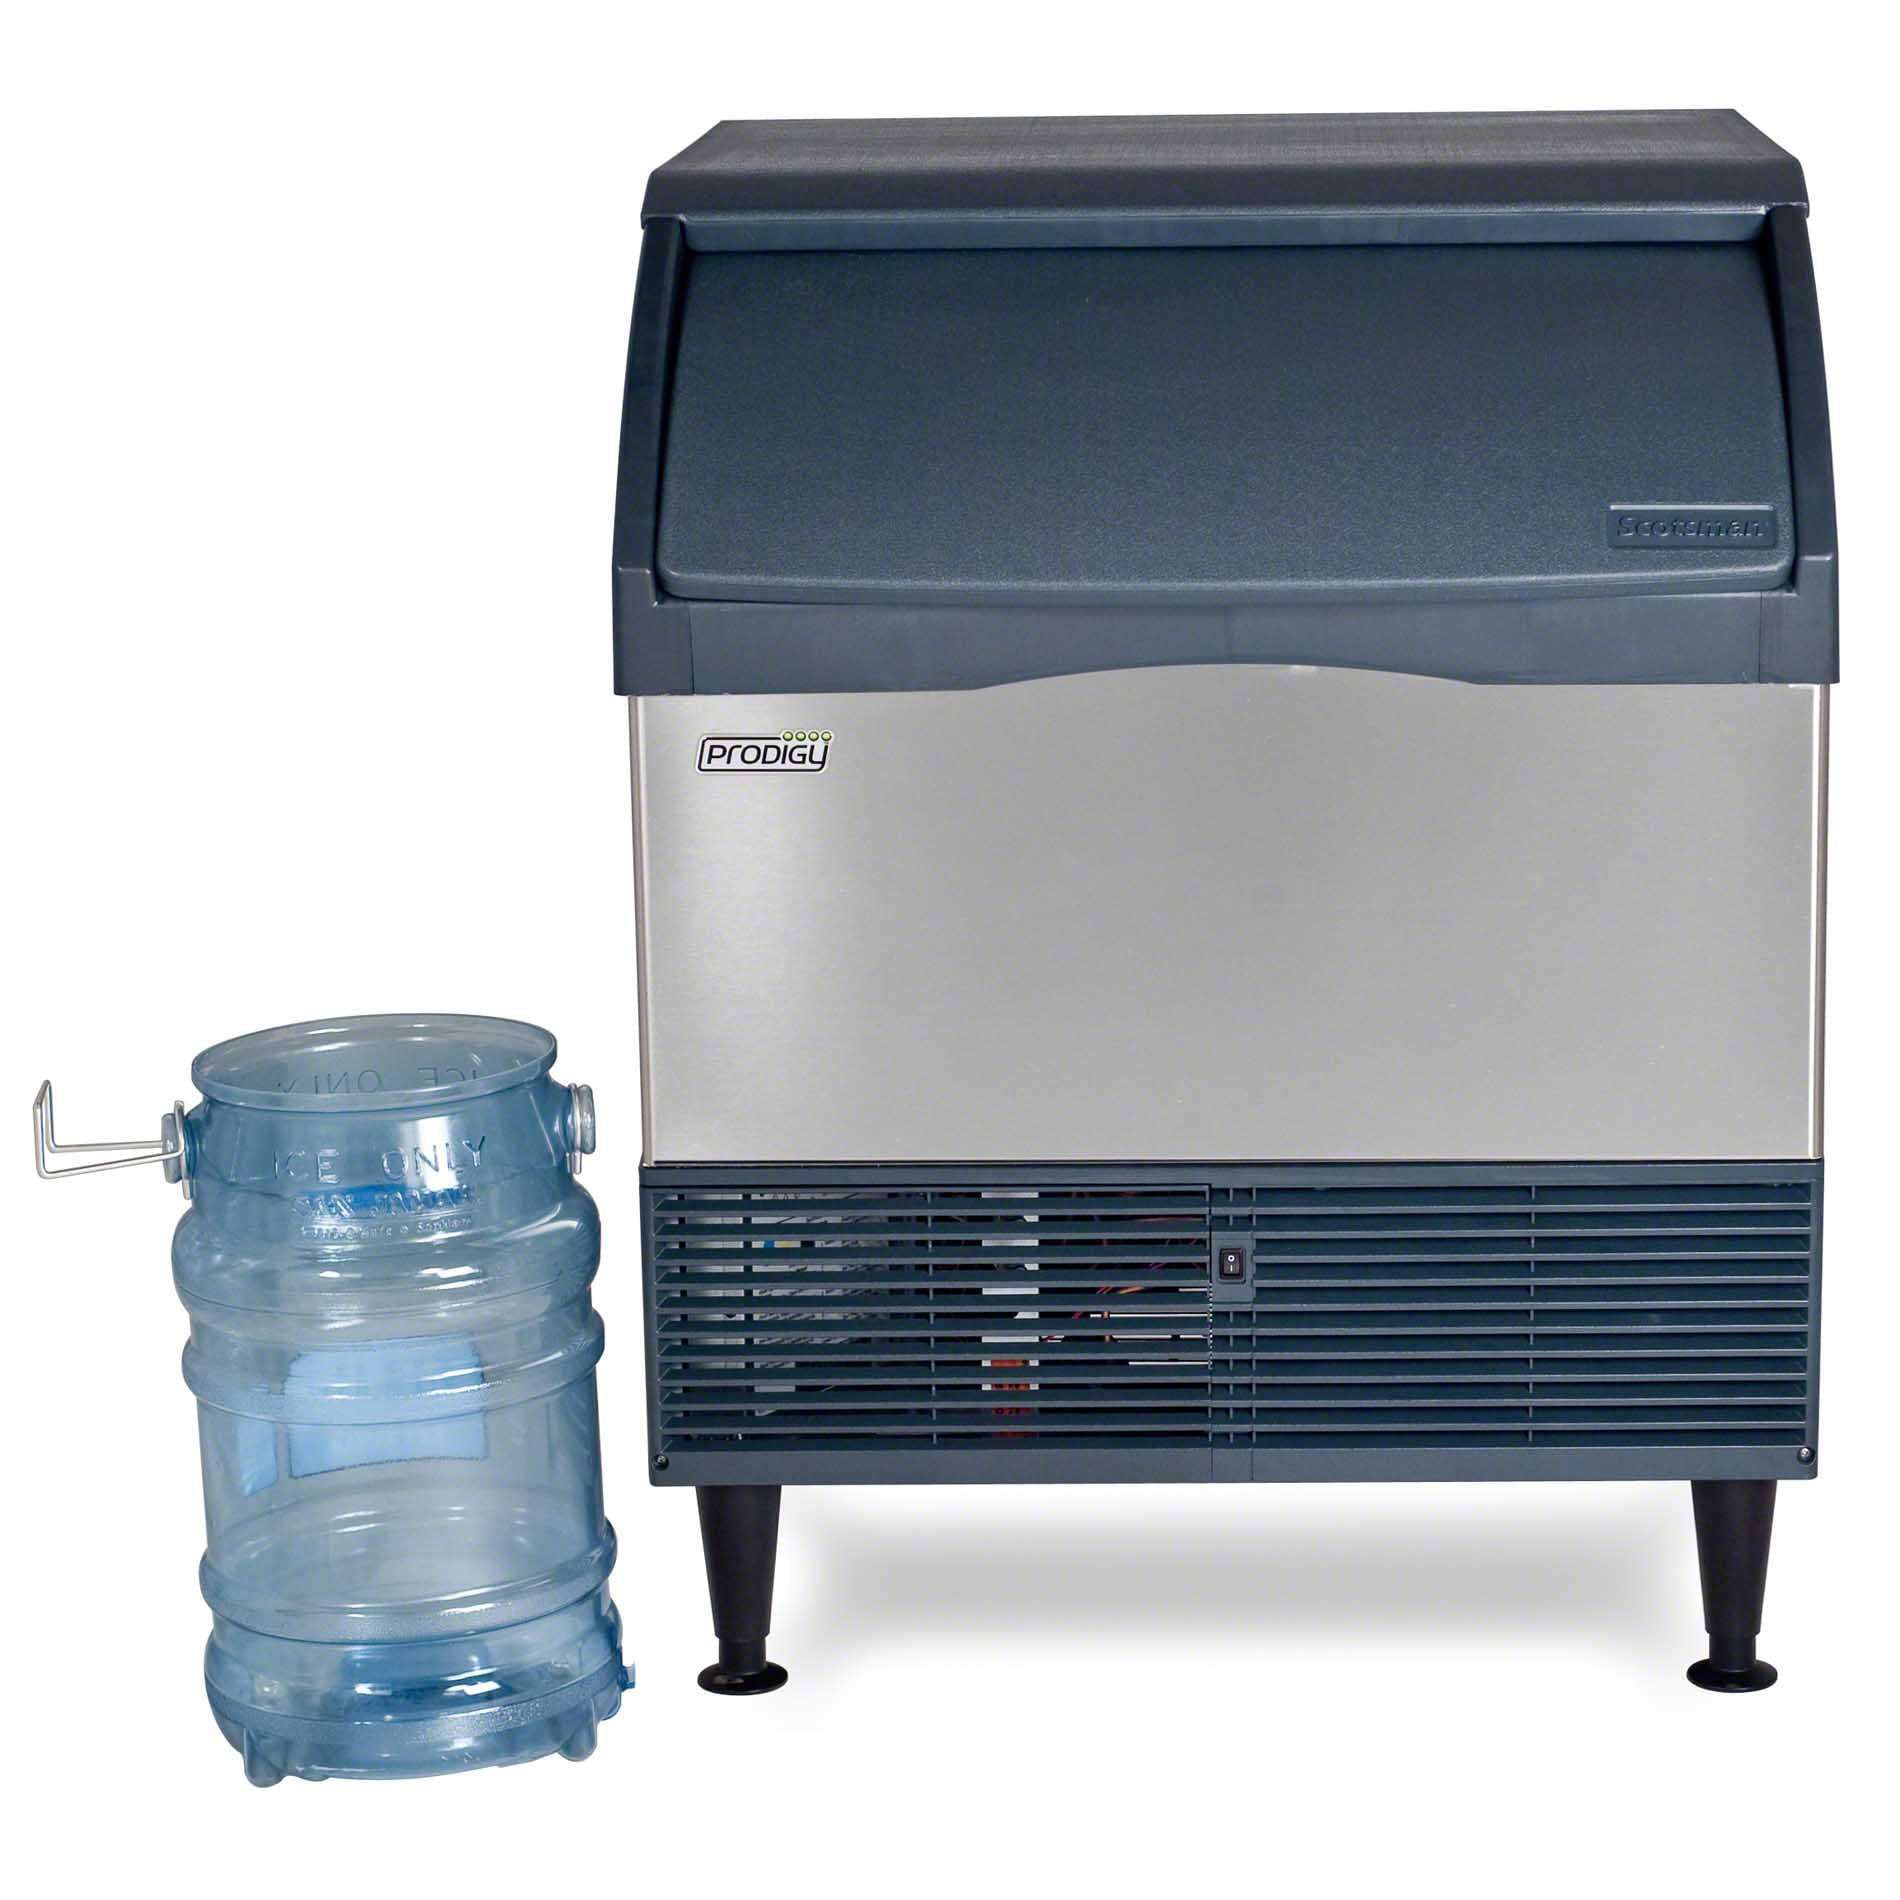 Scotsman - CU3030MA-32A 250 lb Self-Contained Cube Ice Machine - Prodigy® Series Ice machine sold by Food Service Warehouse